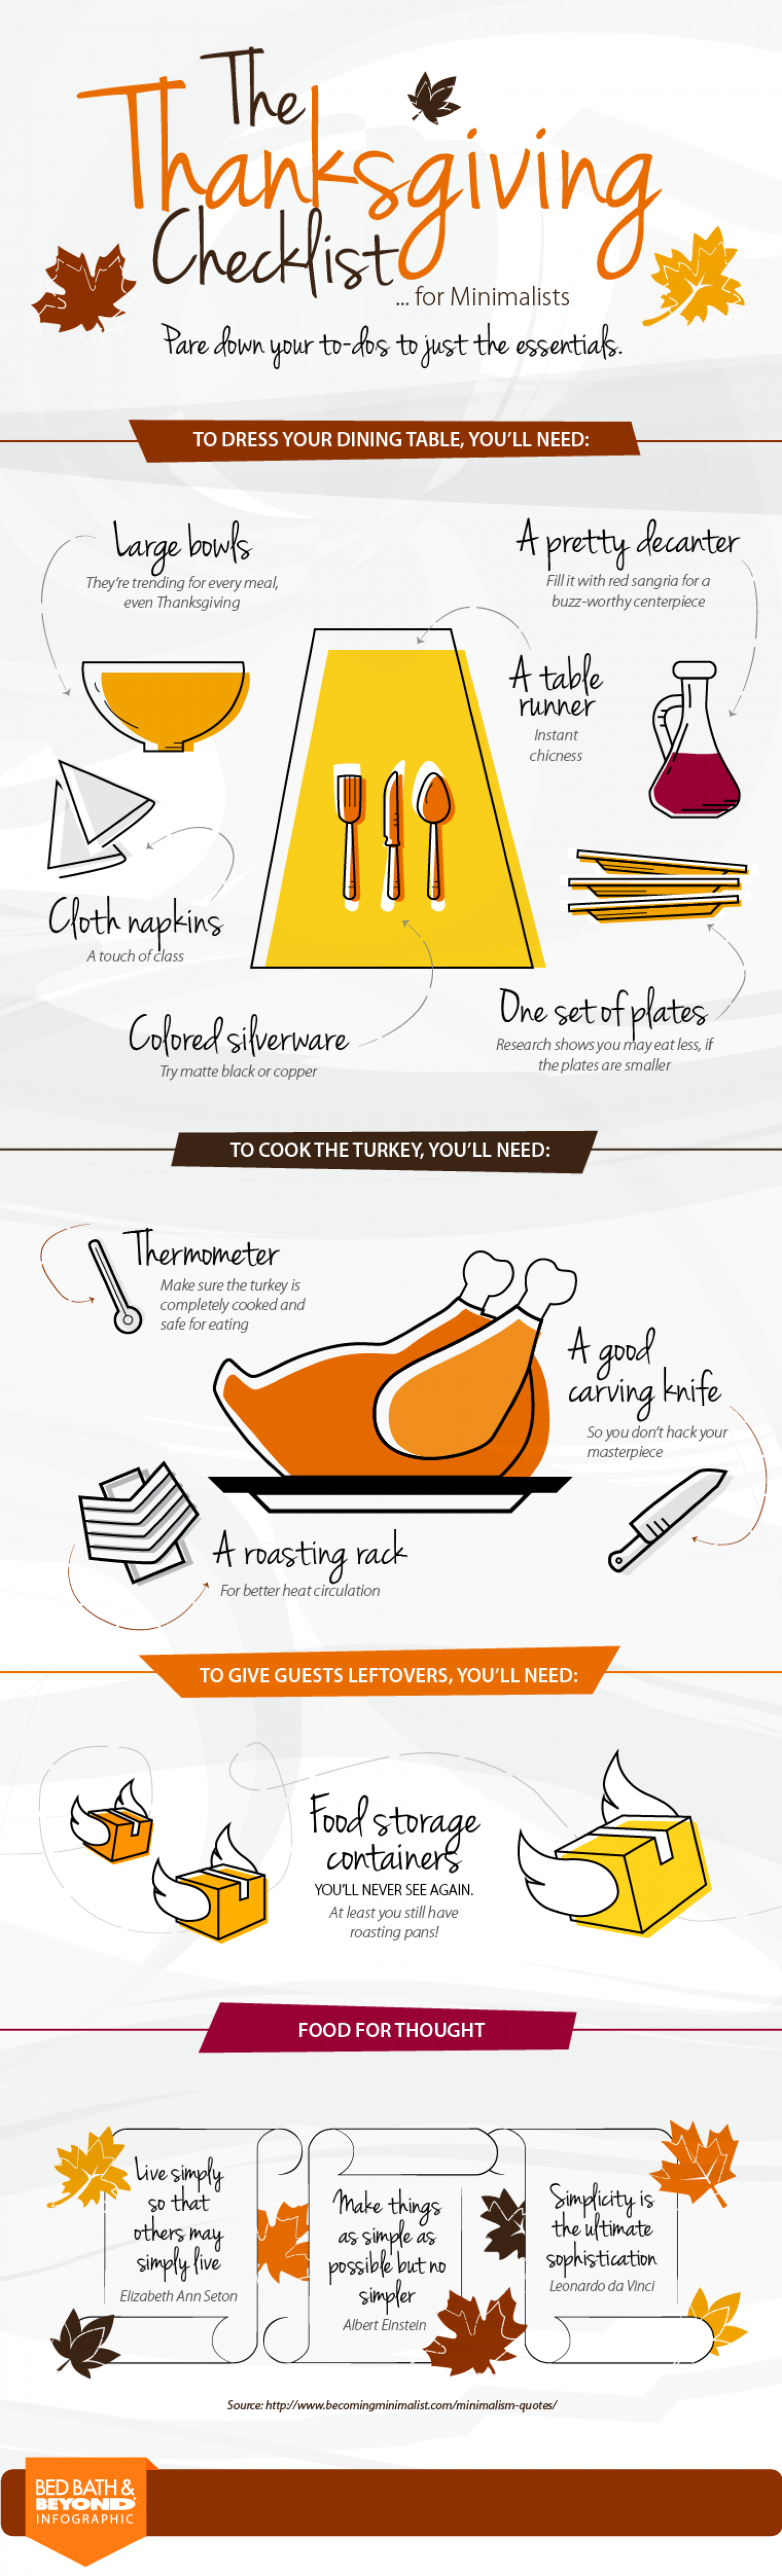 The Thanksgiving checklist for minimalists Infographic